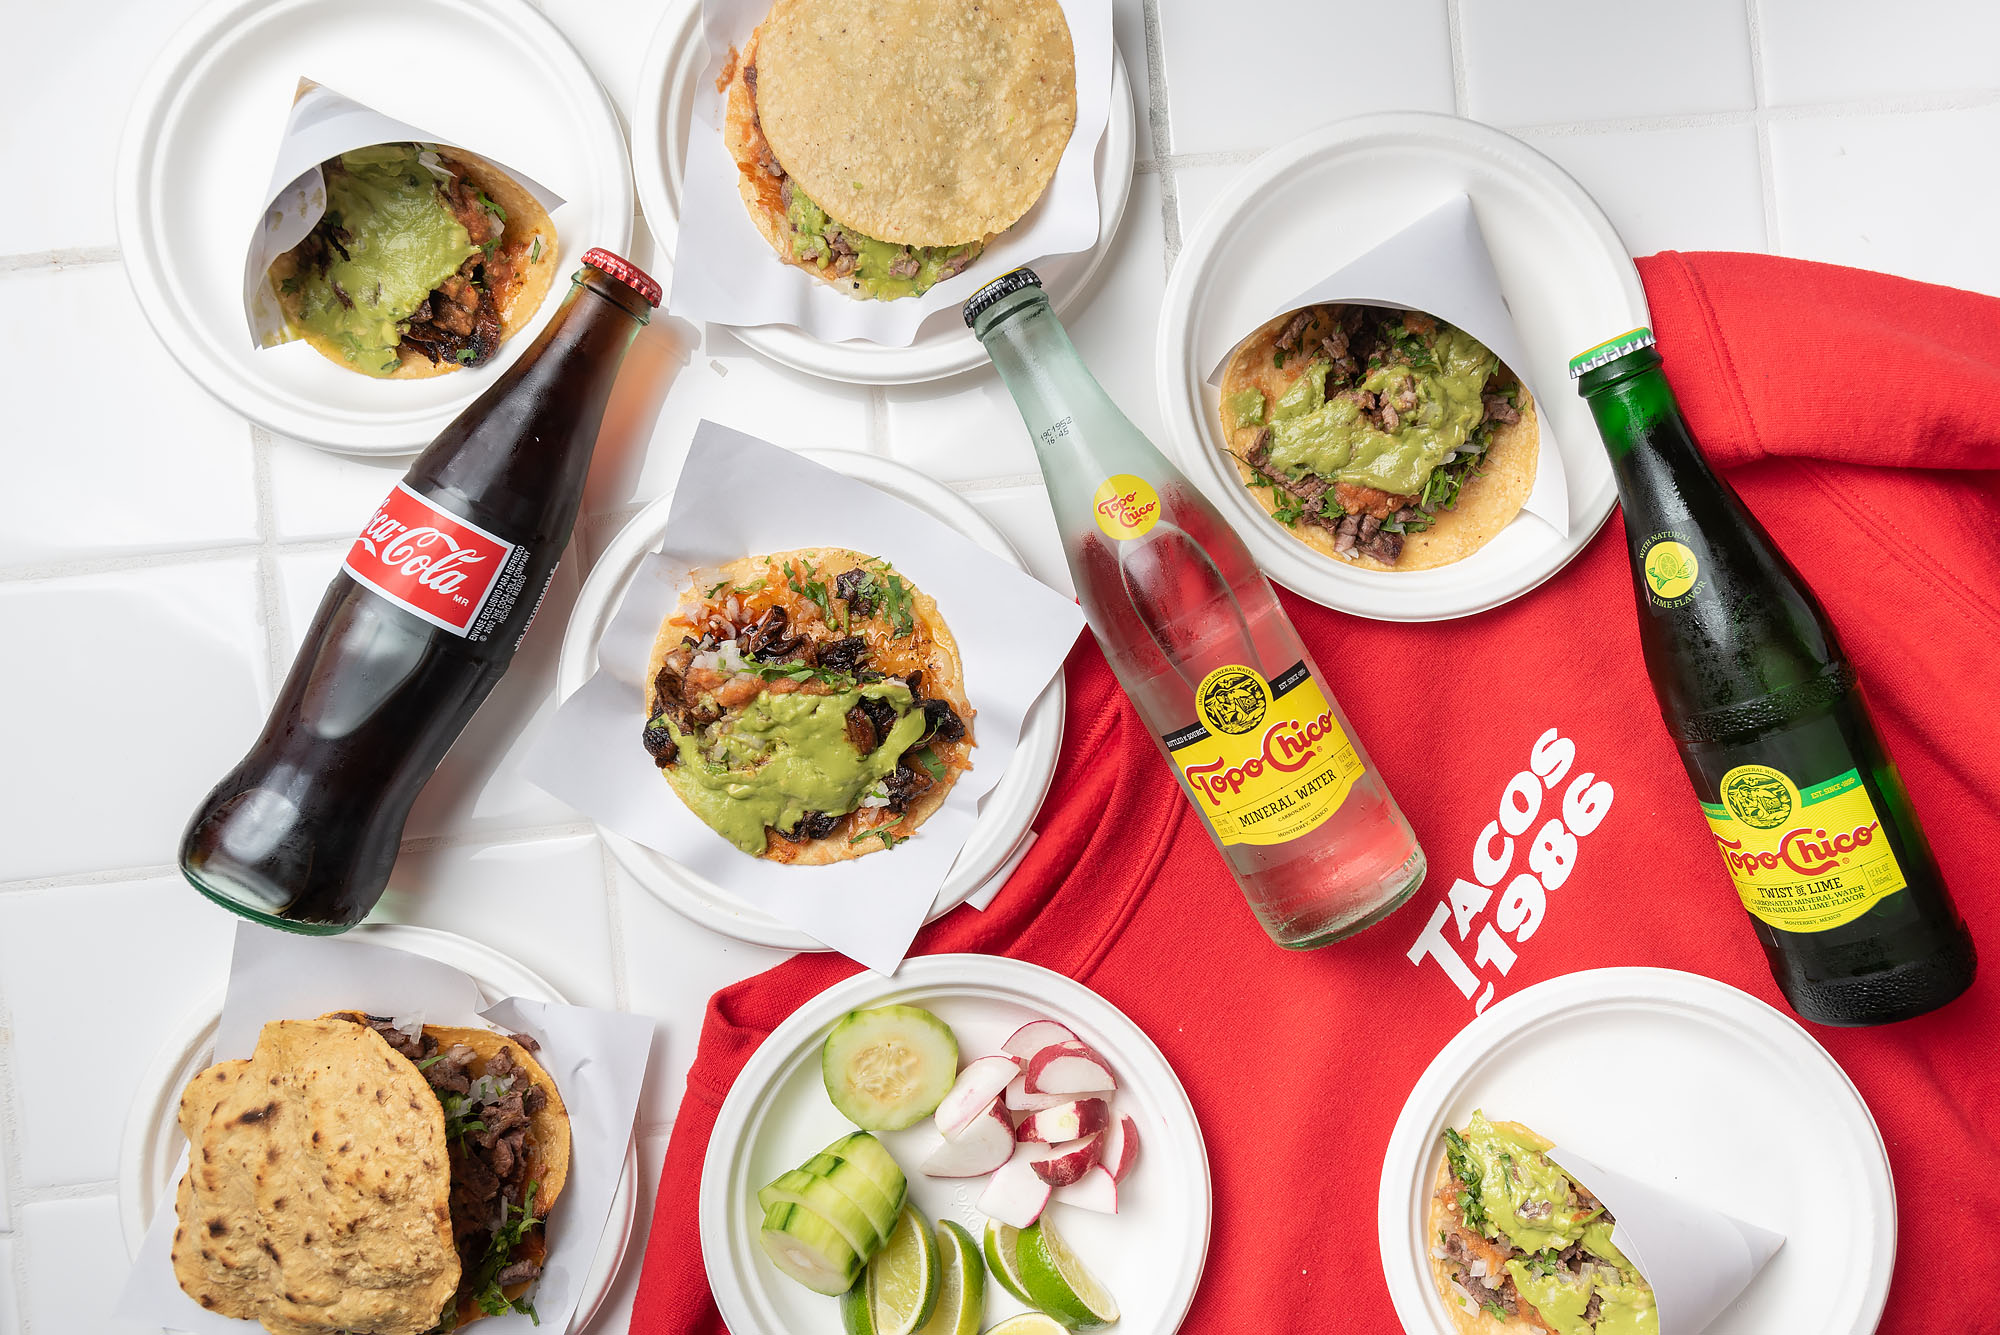 A spread of tacos and drinks from Tacos 1986